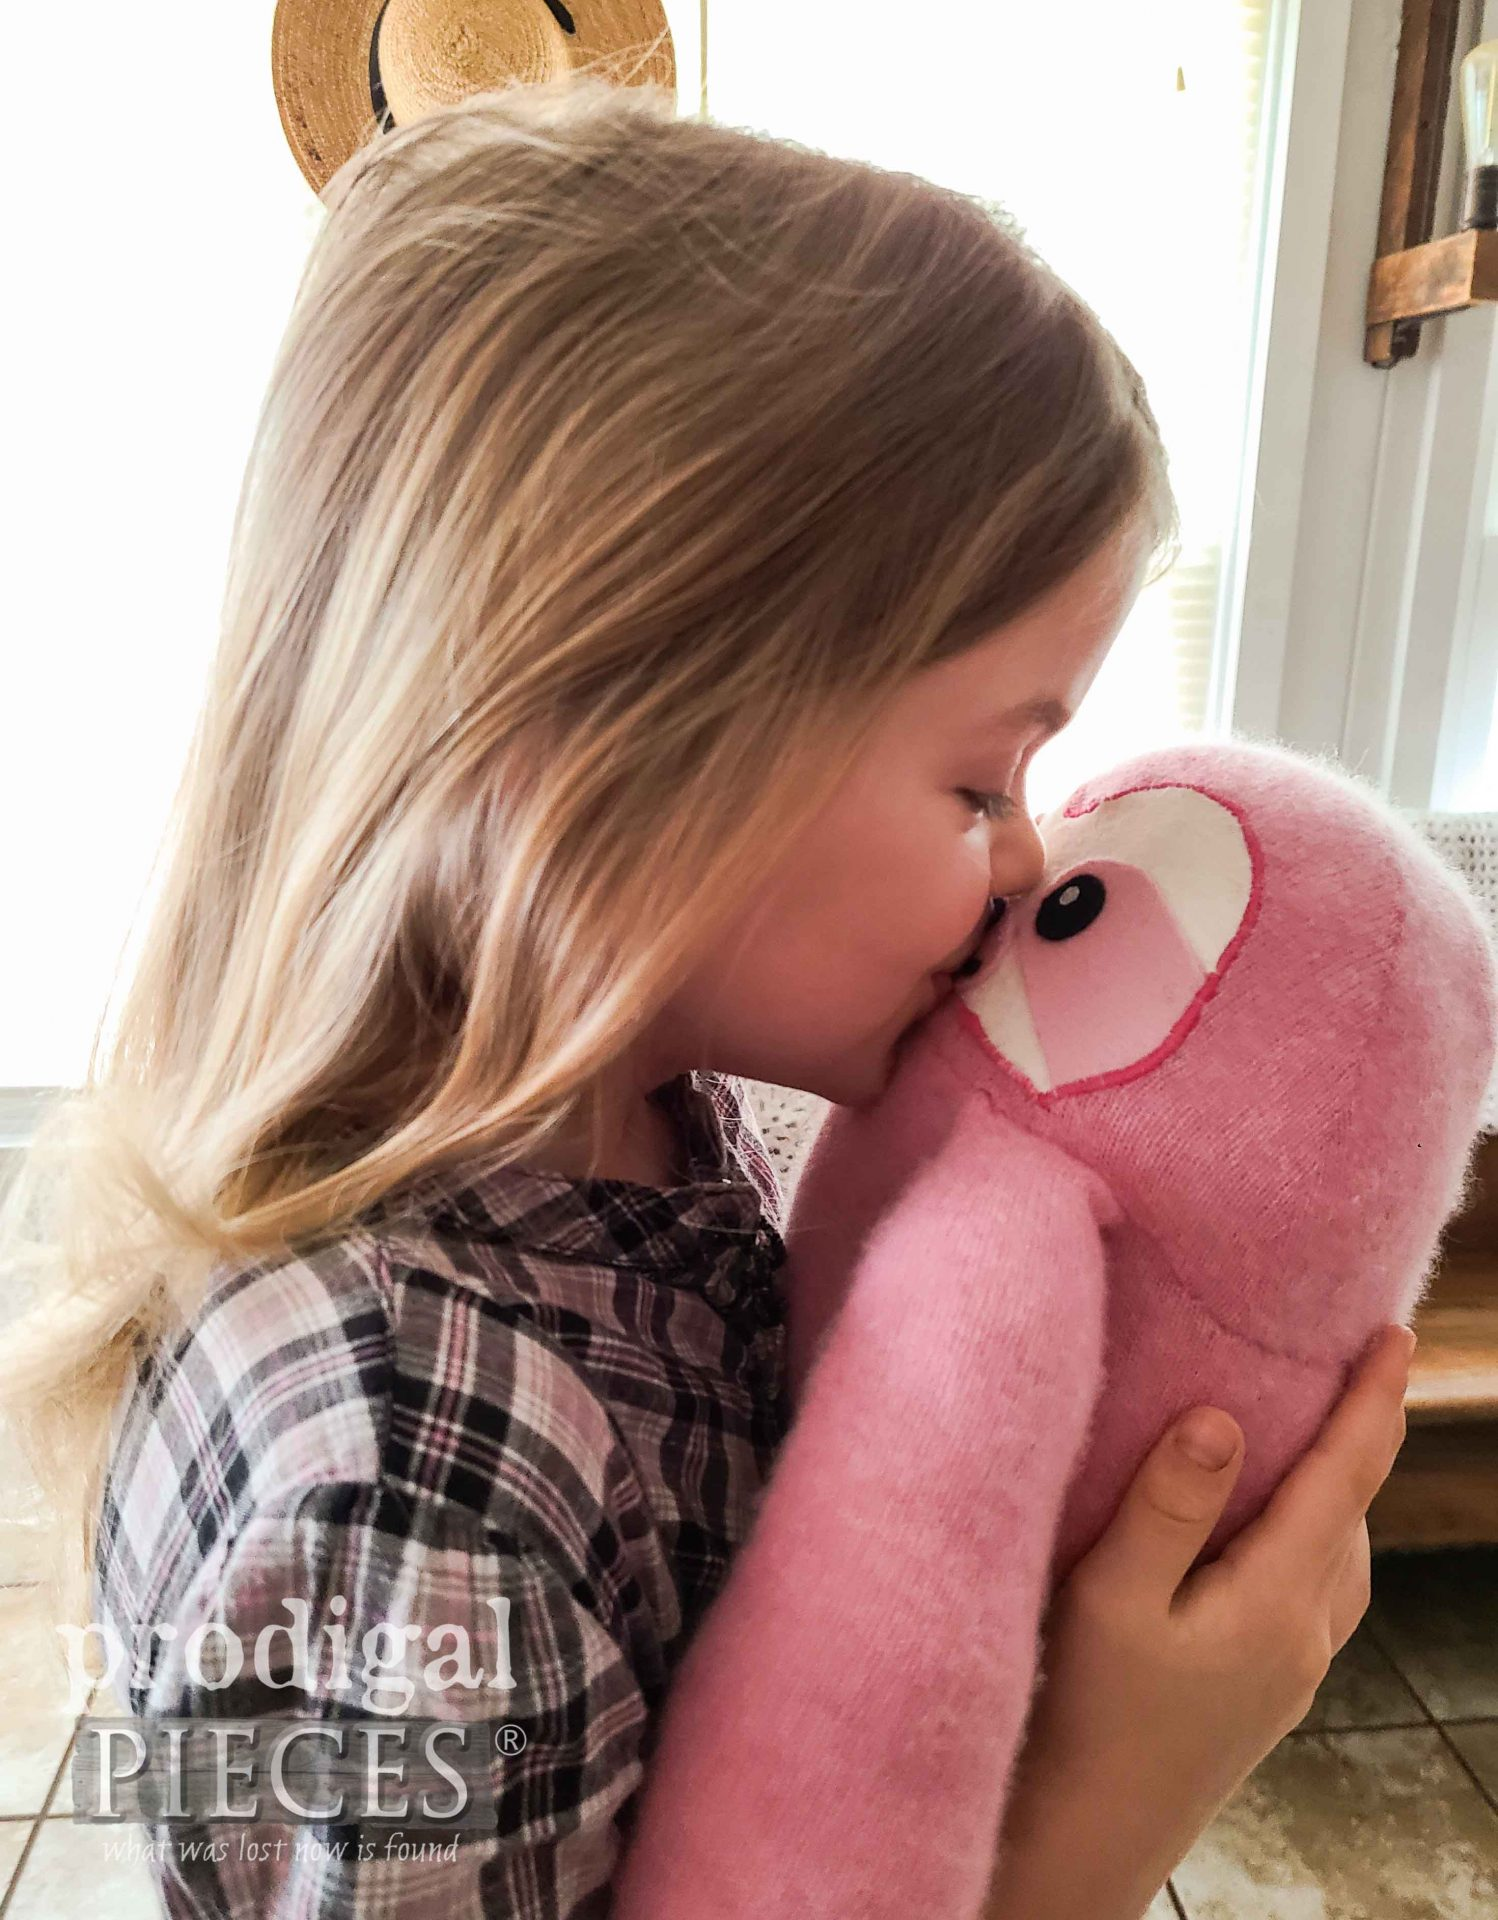 Kissing Upcycled Sweater Sloth Plushie by Larissa of Prodigal Pieces   prodigalpieces.com #prodigalpieces #toy #sewing #refashion #upcycled